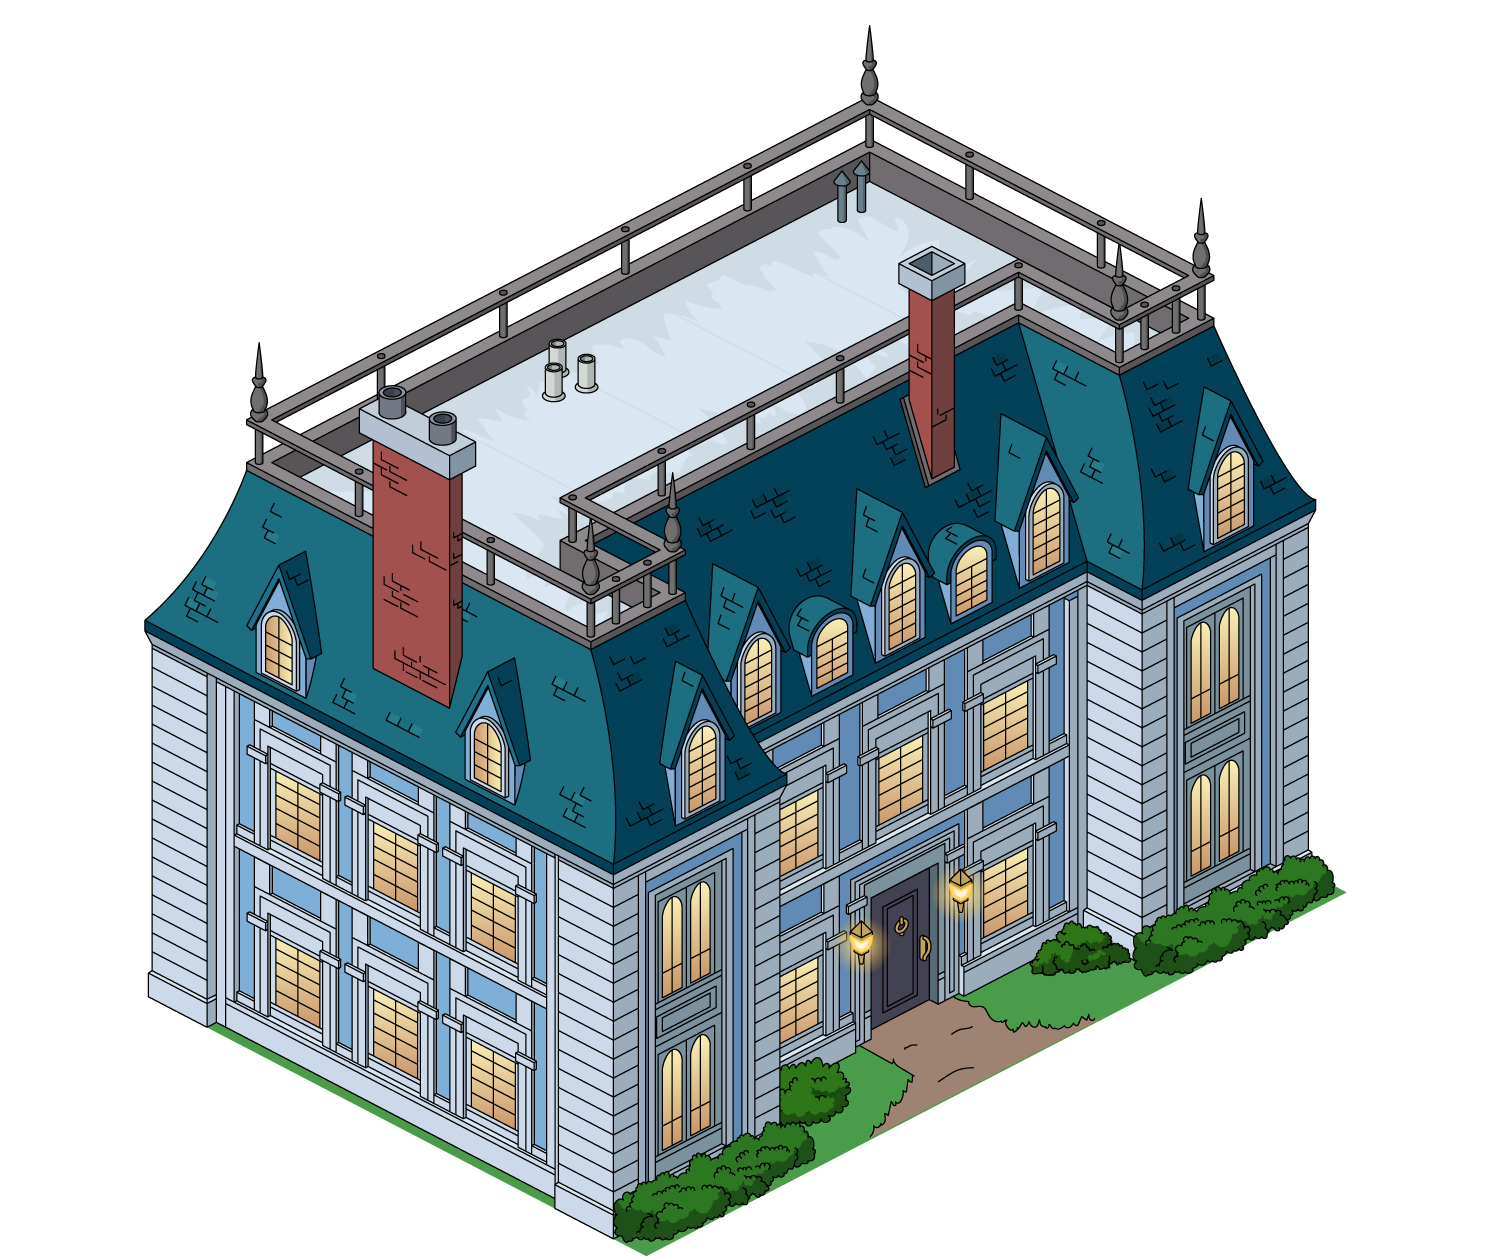 Cinderella\'s House | Family Guy: The Quest for Stuff Wiki | FANDOM ...